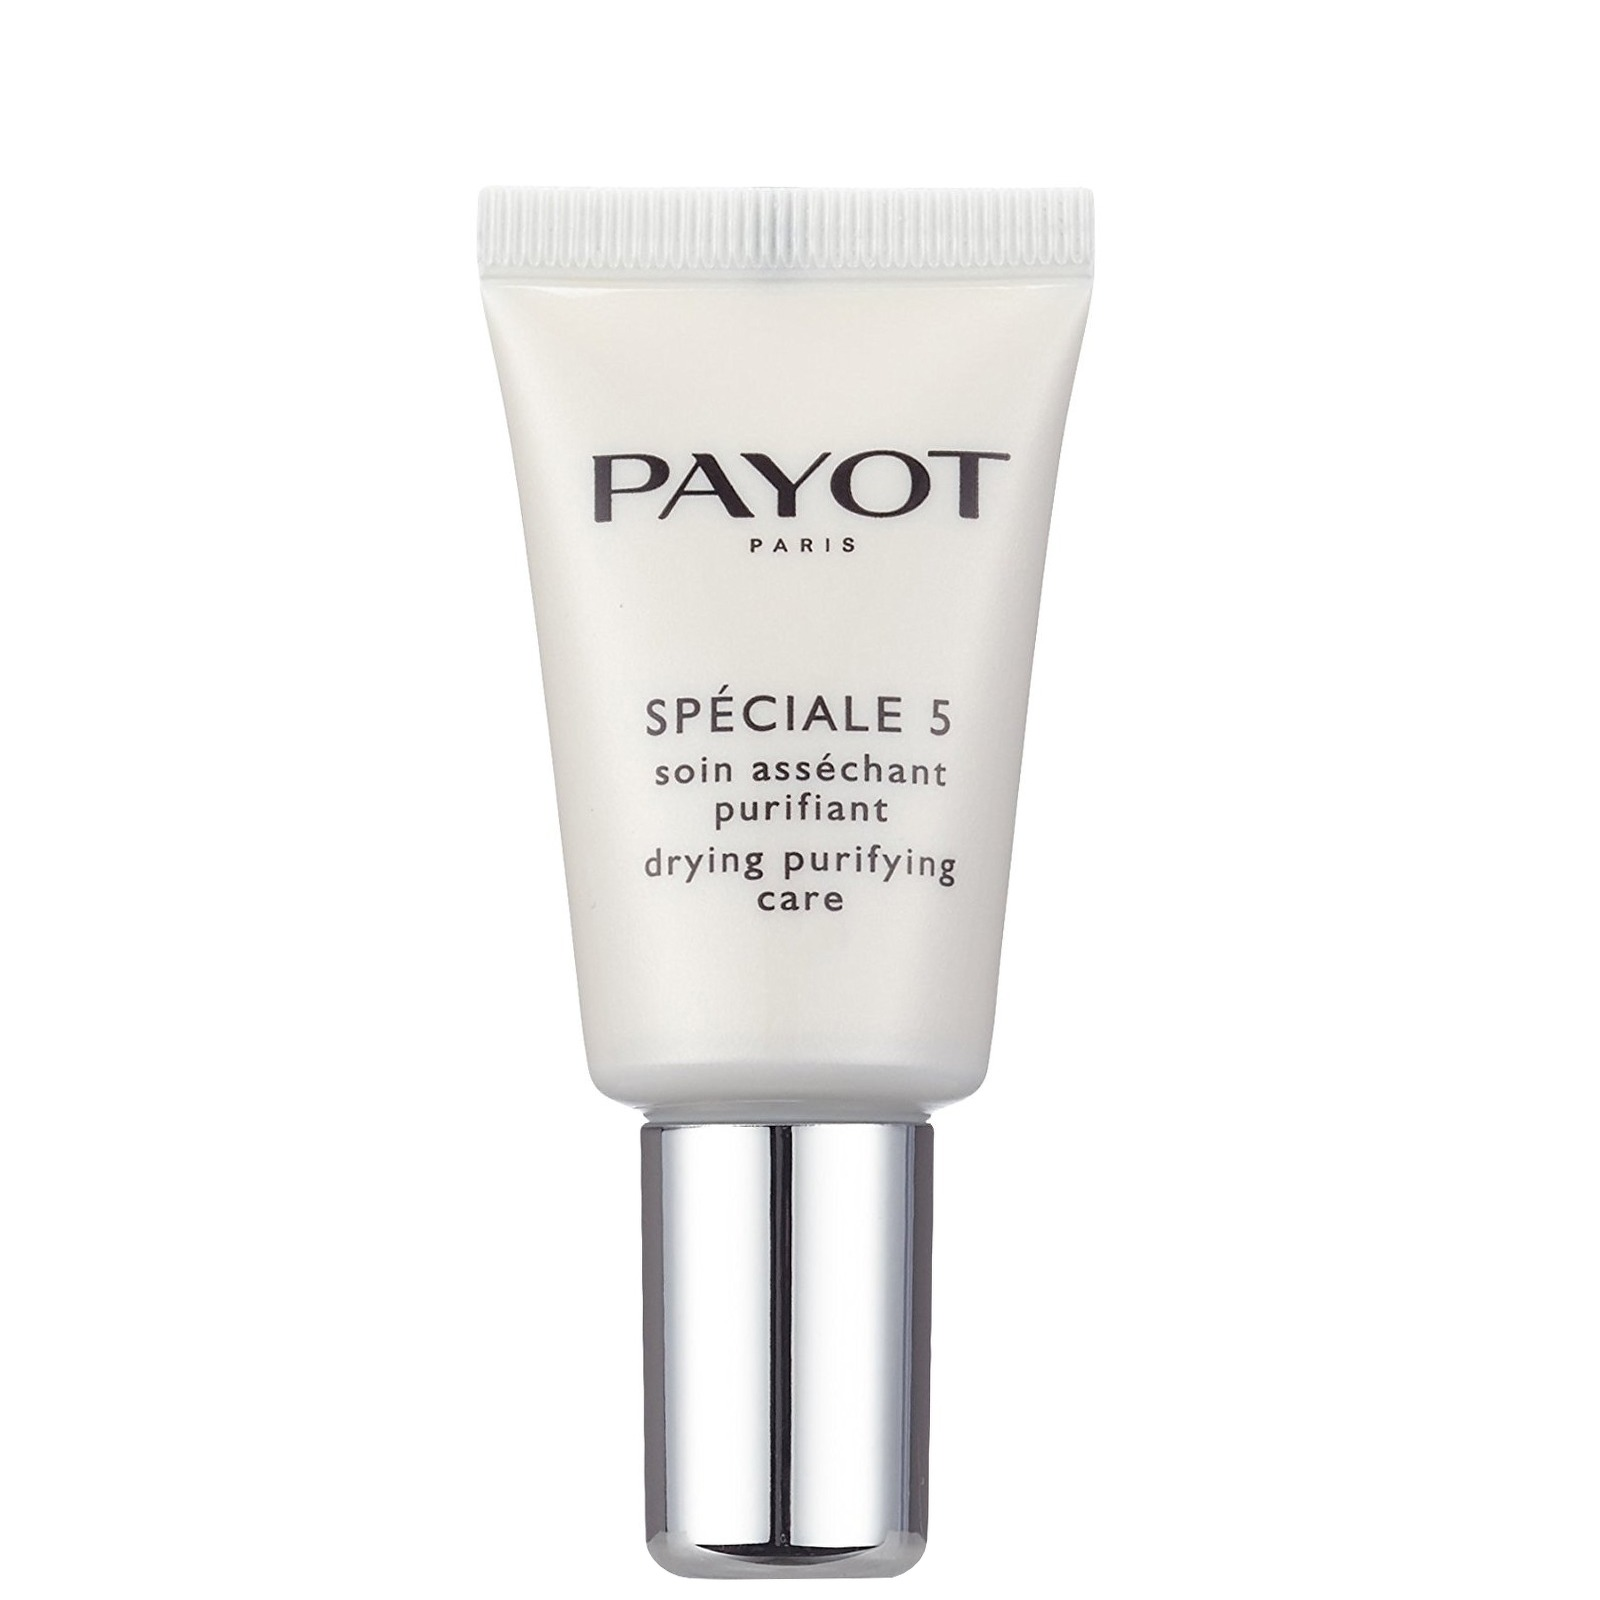 Payot Paris Pâte Grise Spéciale 5 Drying and Purifying Gel 15ml